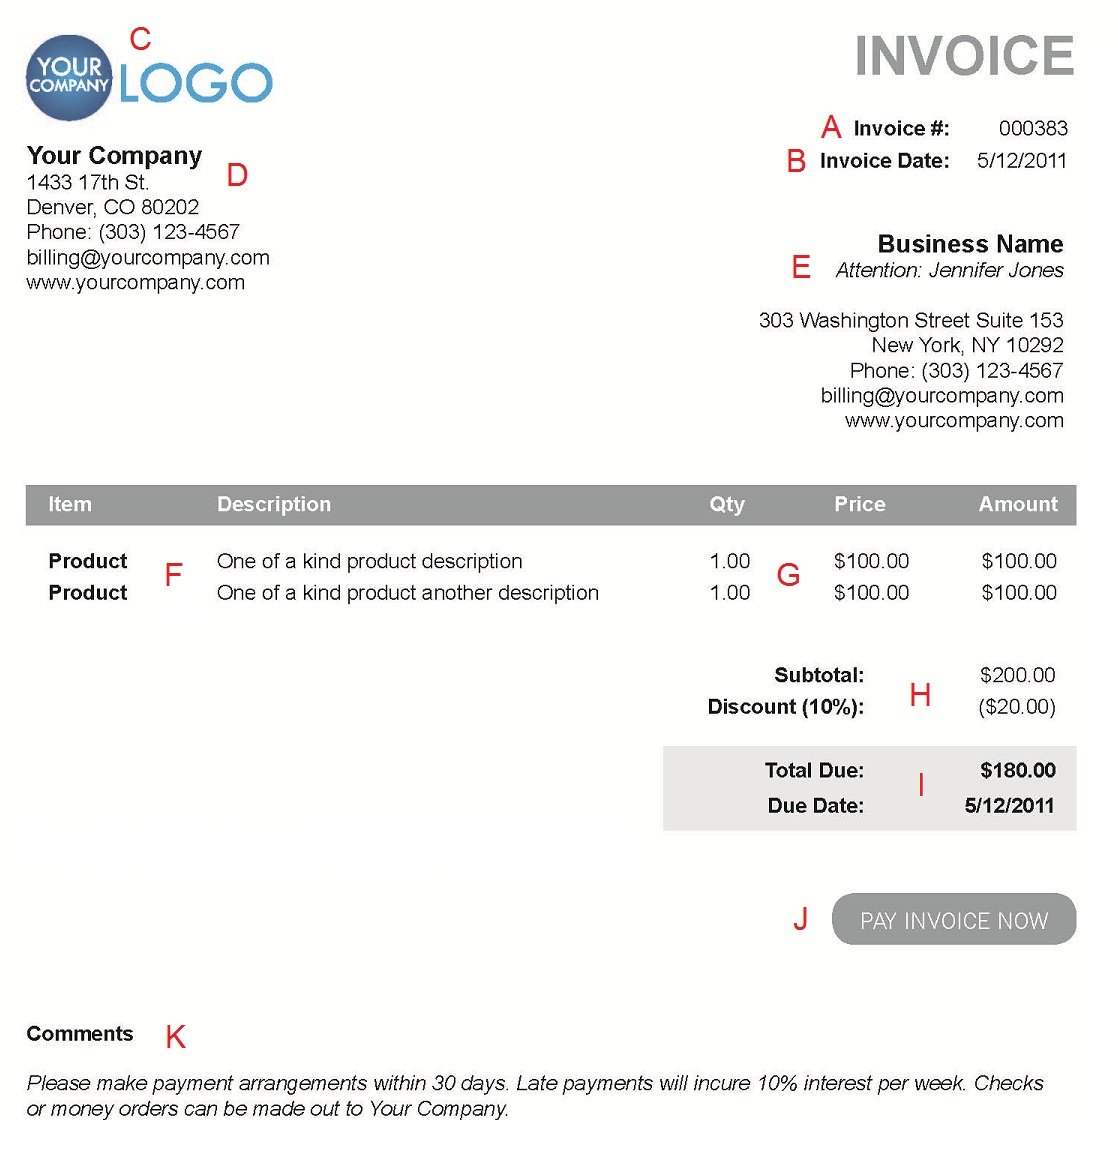 Atvingus  Marvelous The  Different Sections Of An Electronic Payment Invoice With Extraordinary A  With Cute How To Fill An Invoice Also Get Invoice Price On A New Car In Addition Fraudulent Invoices And Proformal Invoice As Well As Invoicing Rules Additionally Sample Invoice Format In Word From Paysimplecom With Atvingus  Extraordinary The  Different Sections Of An Electronic Payment Invoice With Cute A  And Marvelous How To Fill An Invoice Also Get Invoice Price On A New Car In Addition Fraudulent Invoices From Paysimplecom